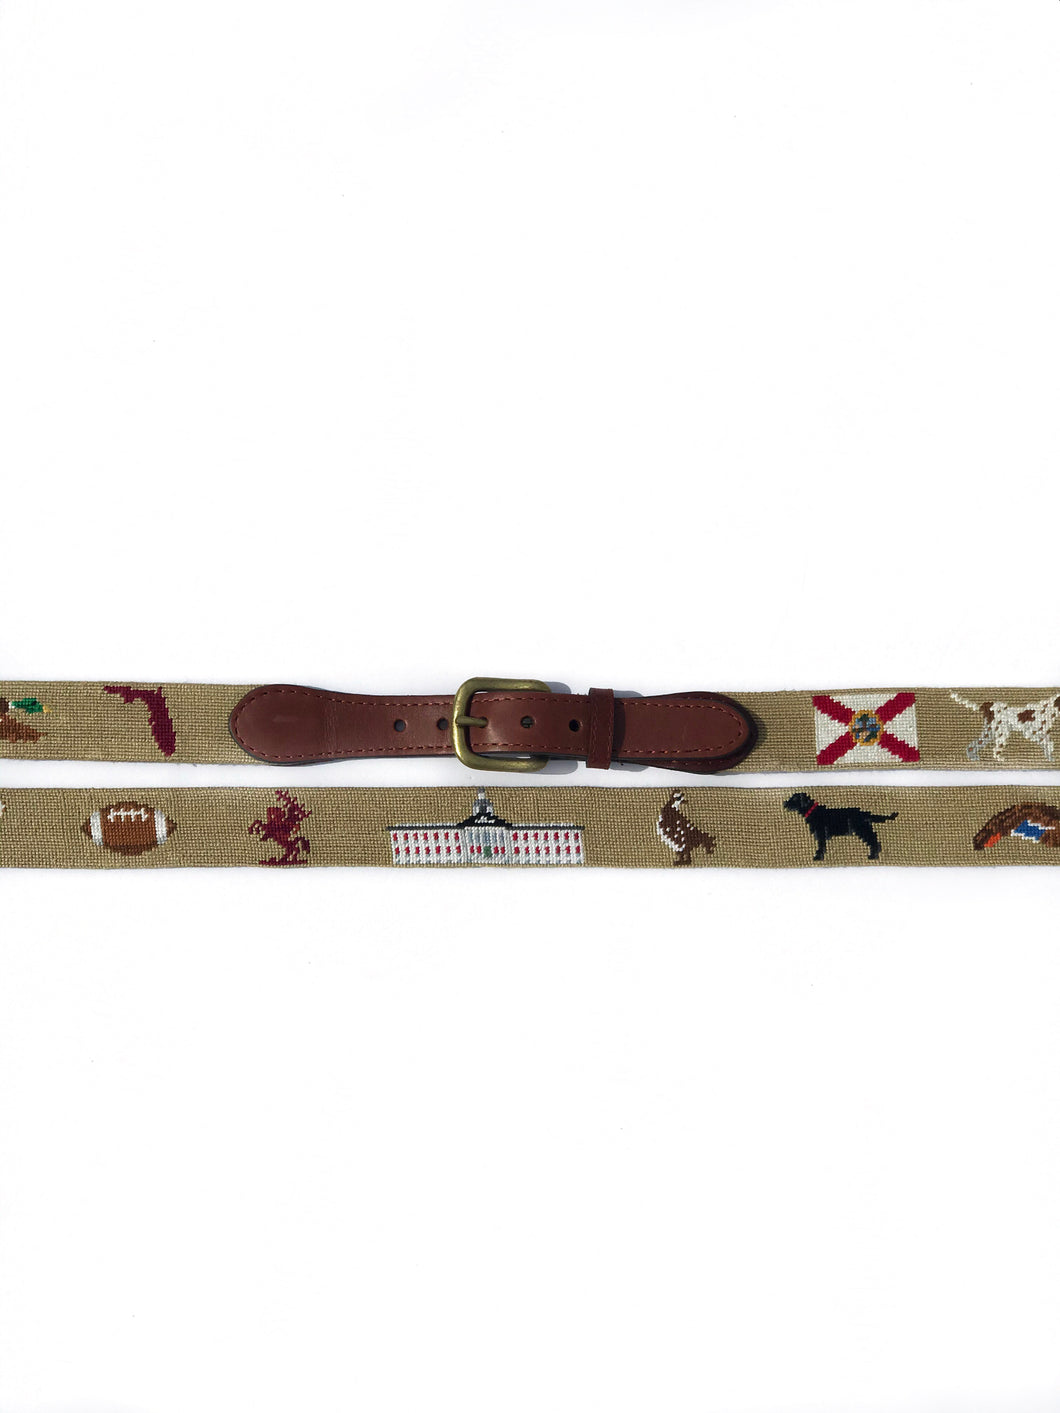 Smathers and Branson Florida themed belt